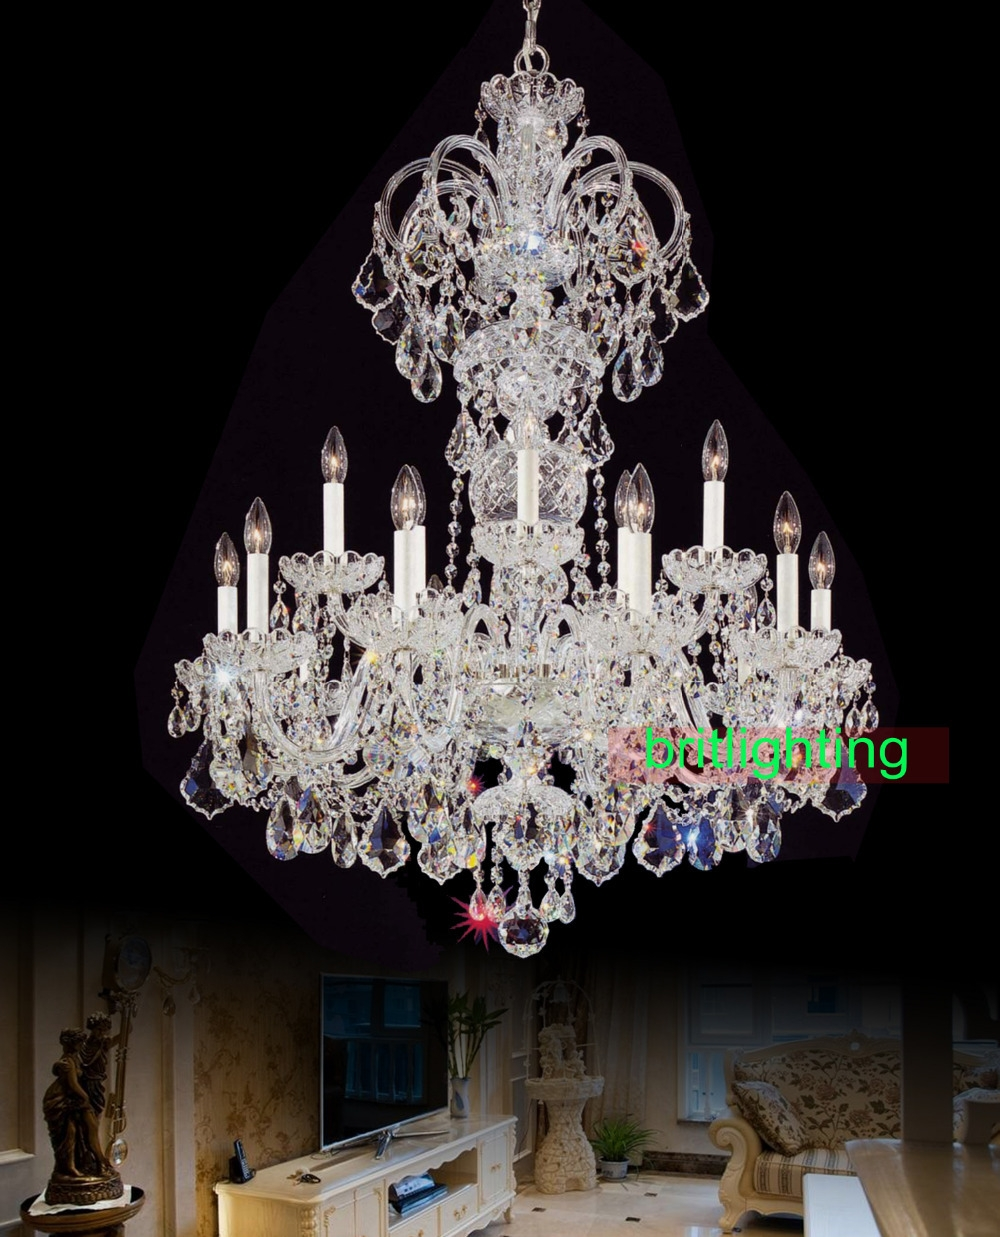 Online Buy Wholesale Big Chandelier From China Big Chandelier Regarding Huge Crystal Chandelier (View 8 of 15)